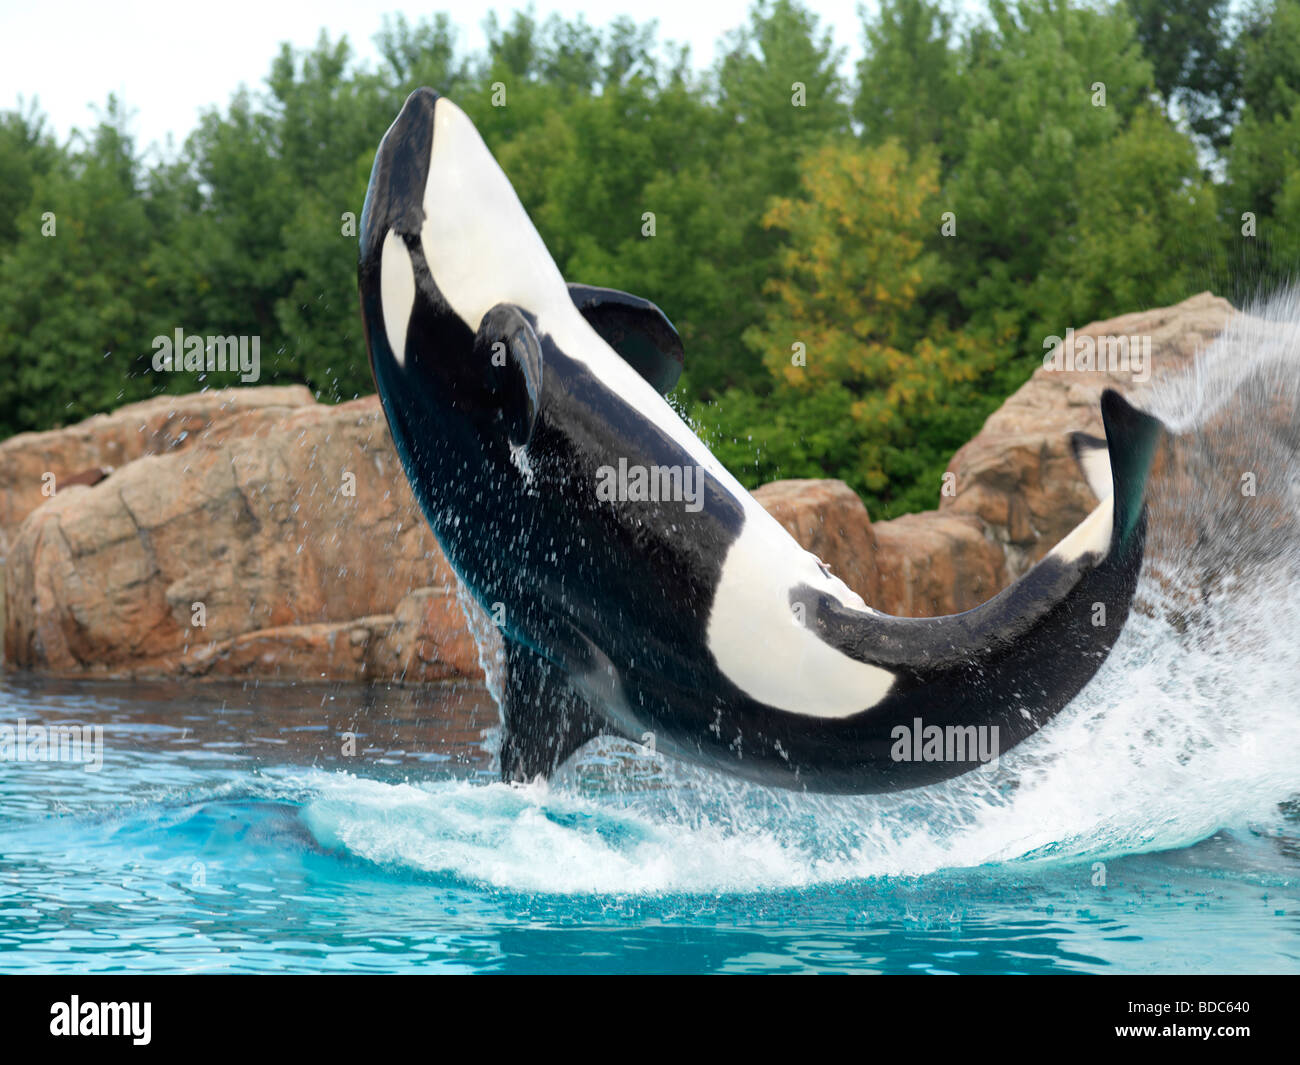 Killer Whale jumping out of the water Marineland Niagara Falls Stock Photo